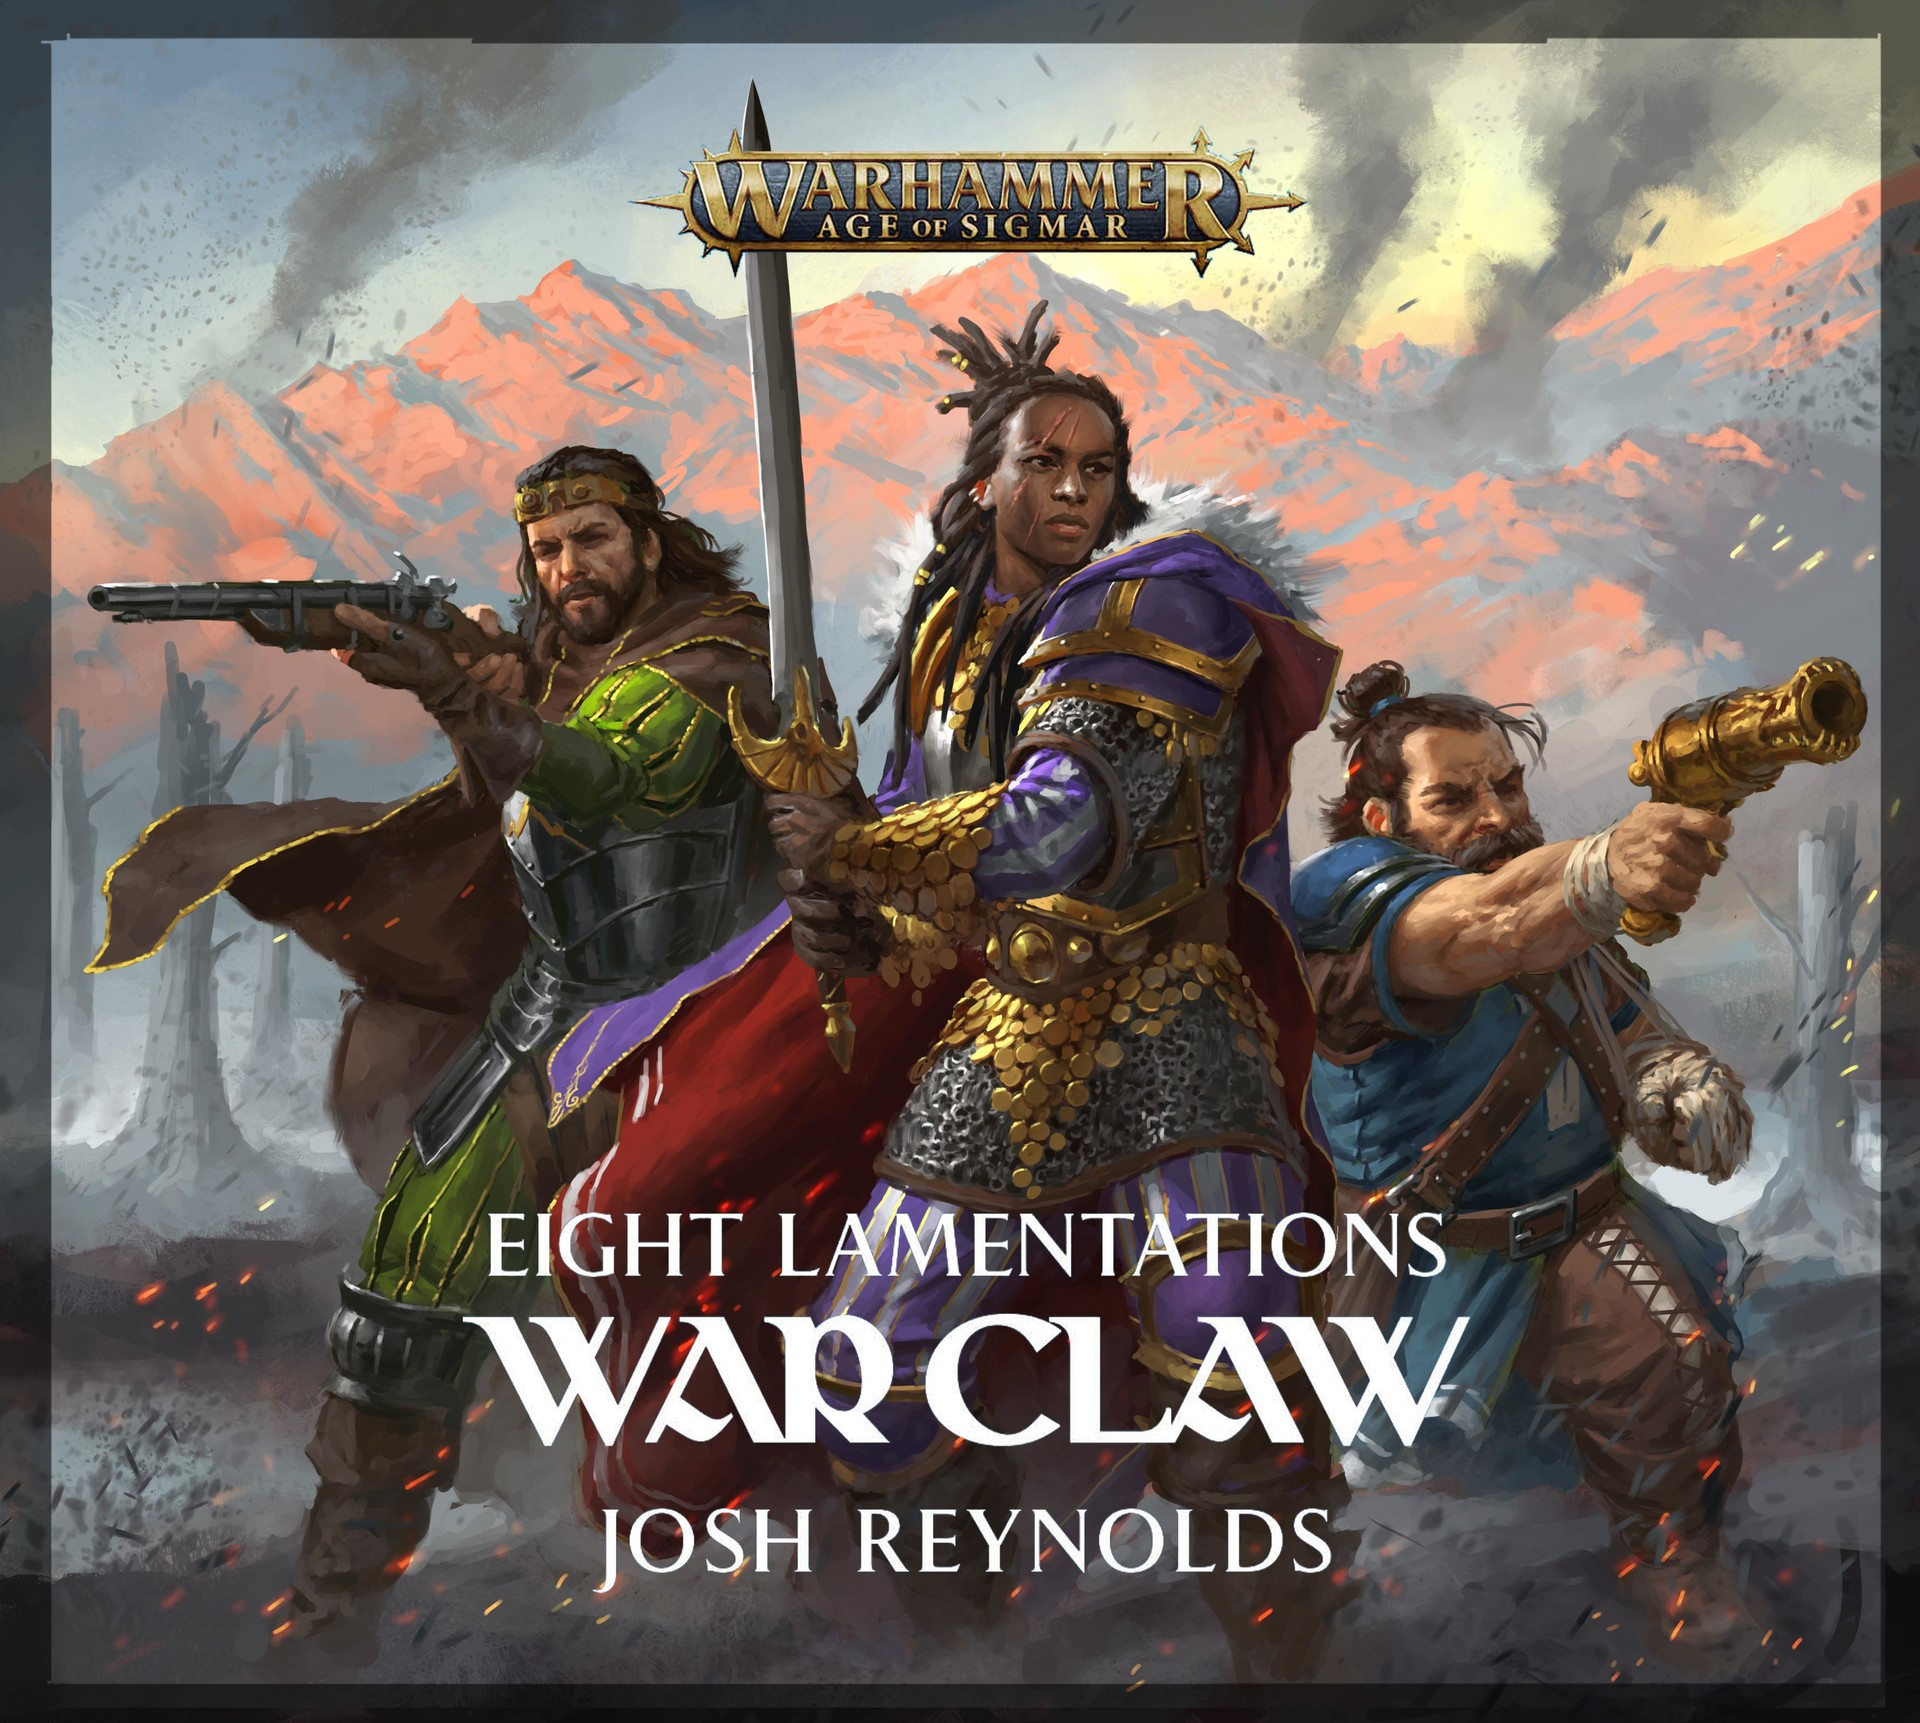 Image result for Eight Lamentations war claw